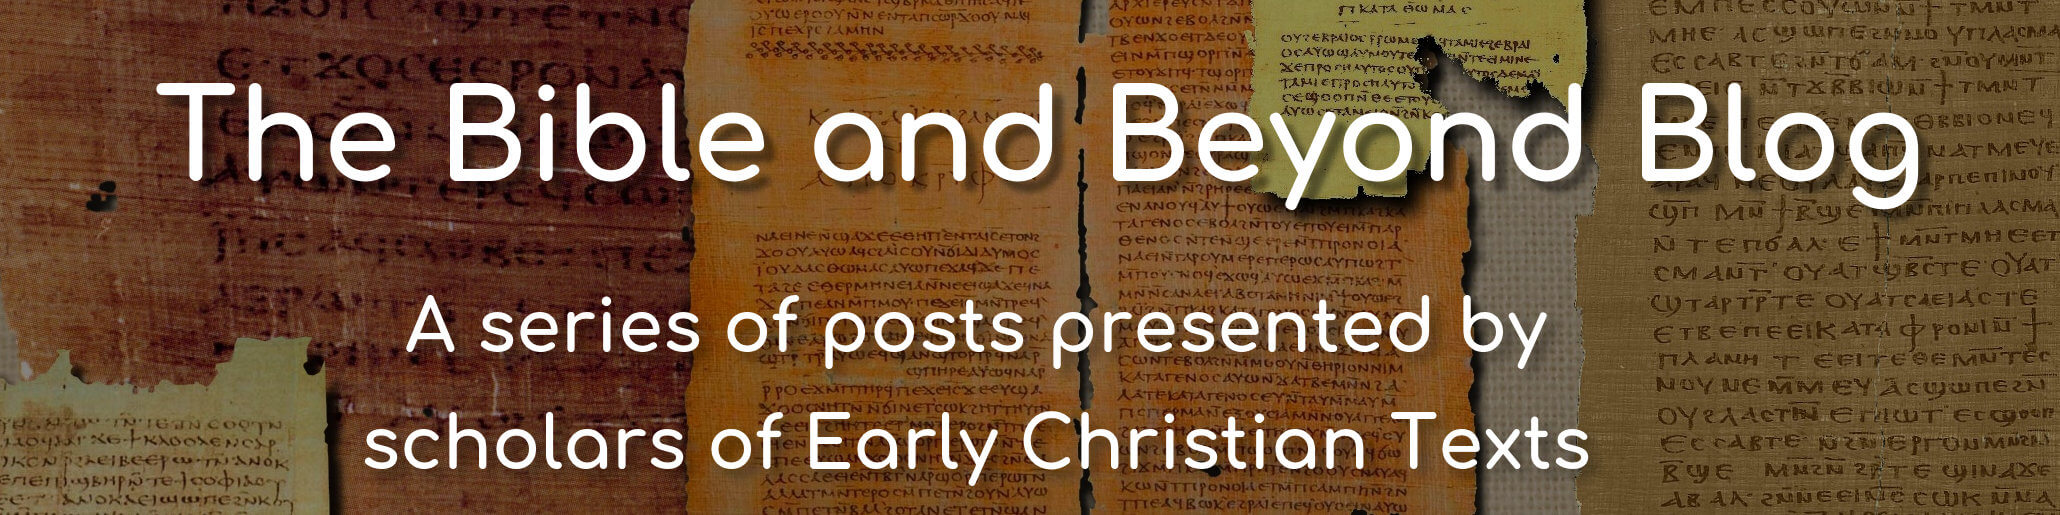 The title image for Early Christian Texts Bible and Beyond blog.